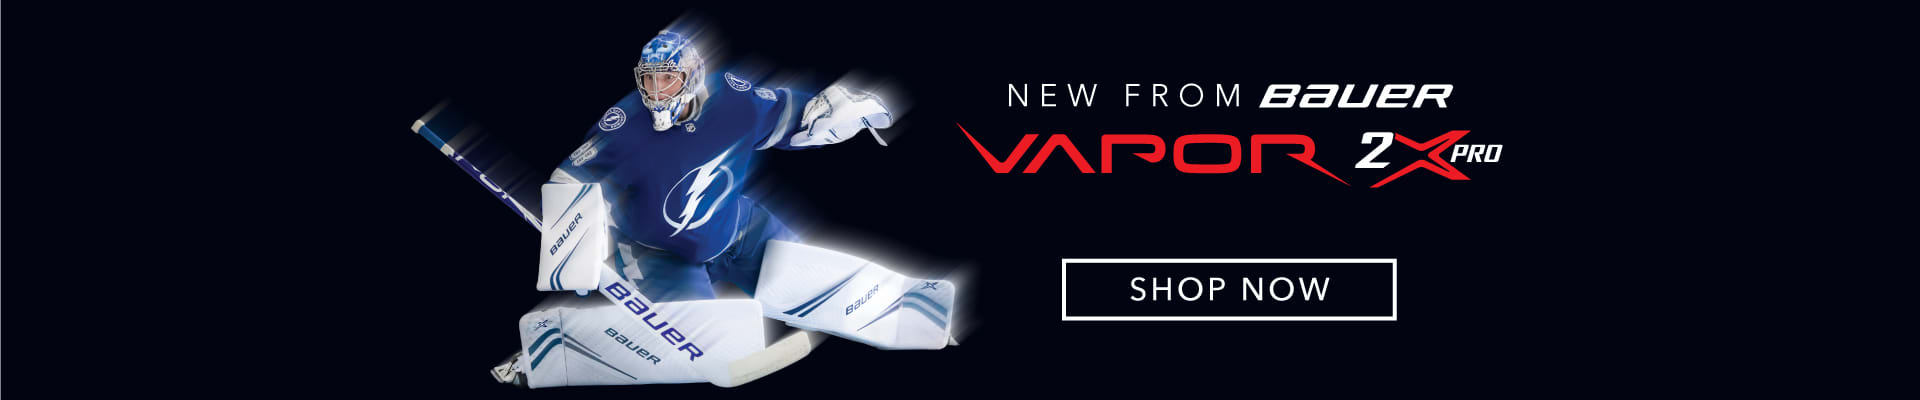 New From Bauer - Vapor 2X Pro